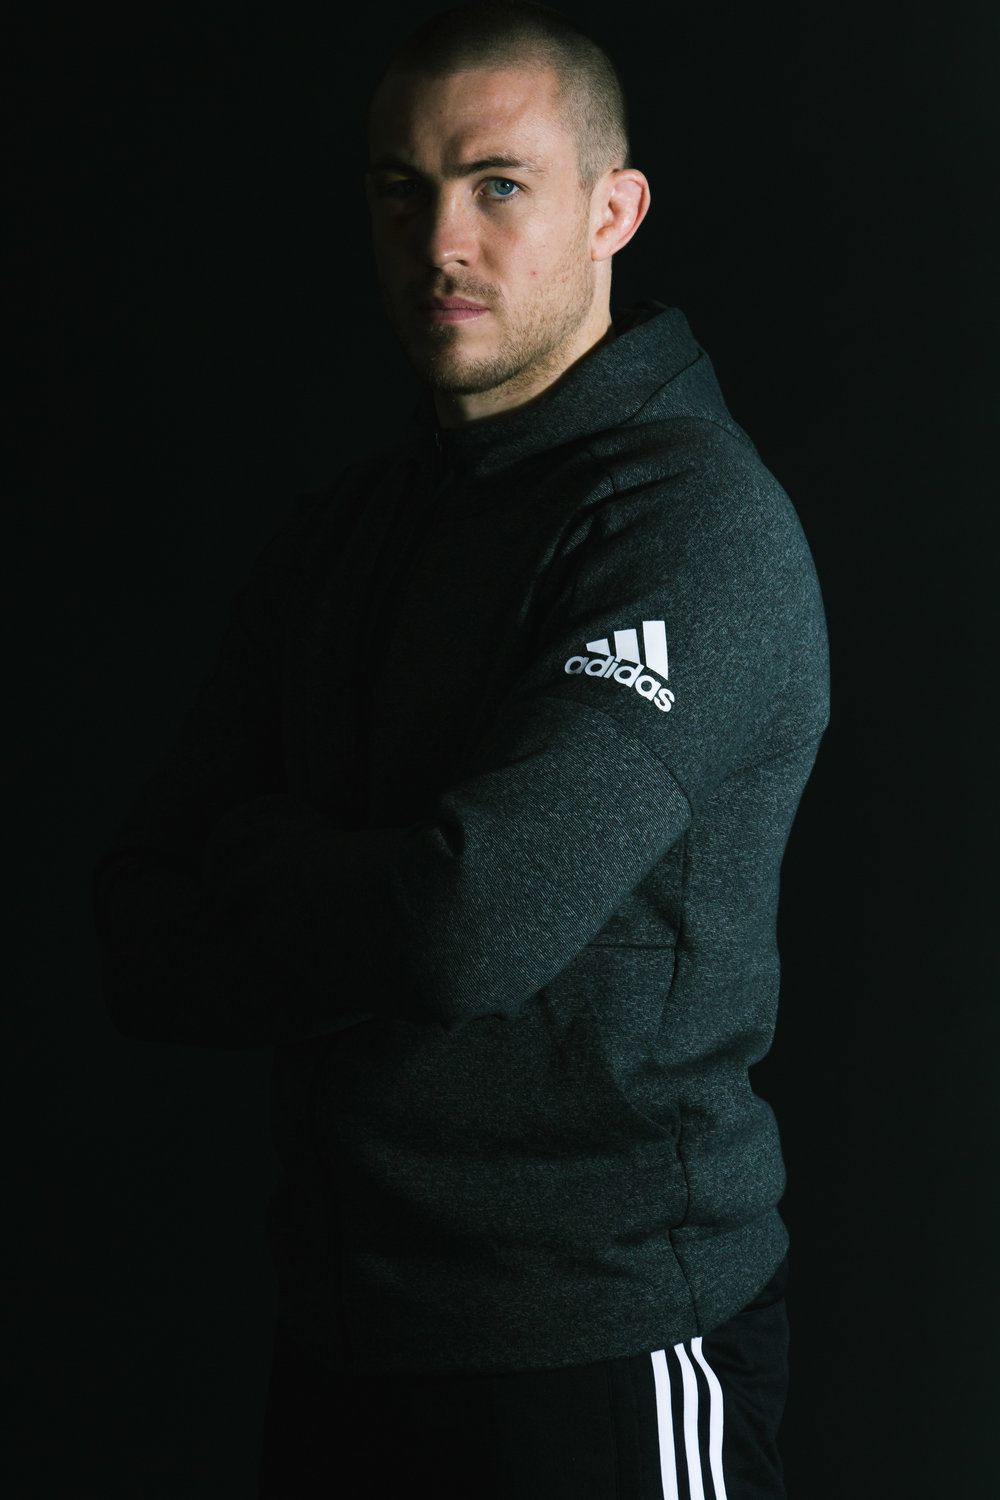 mike-brown-england-rugby-adidas-lss (1 of 2).jpg